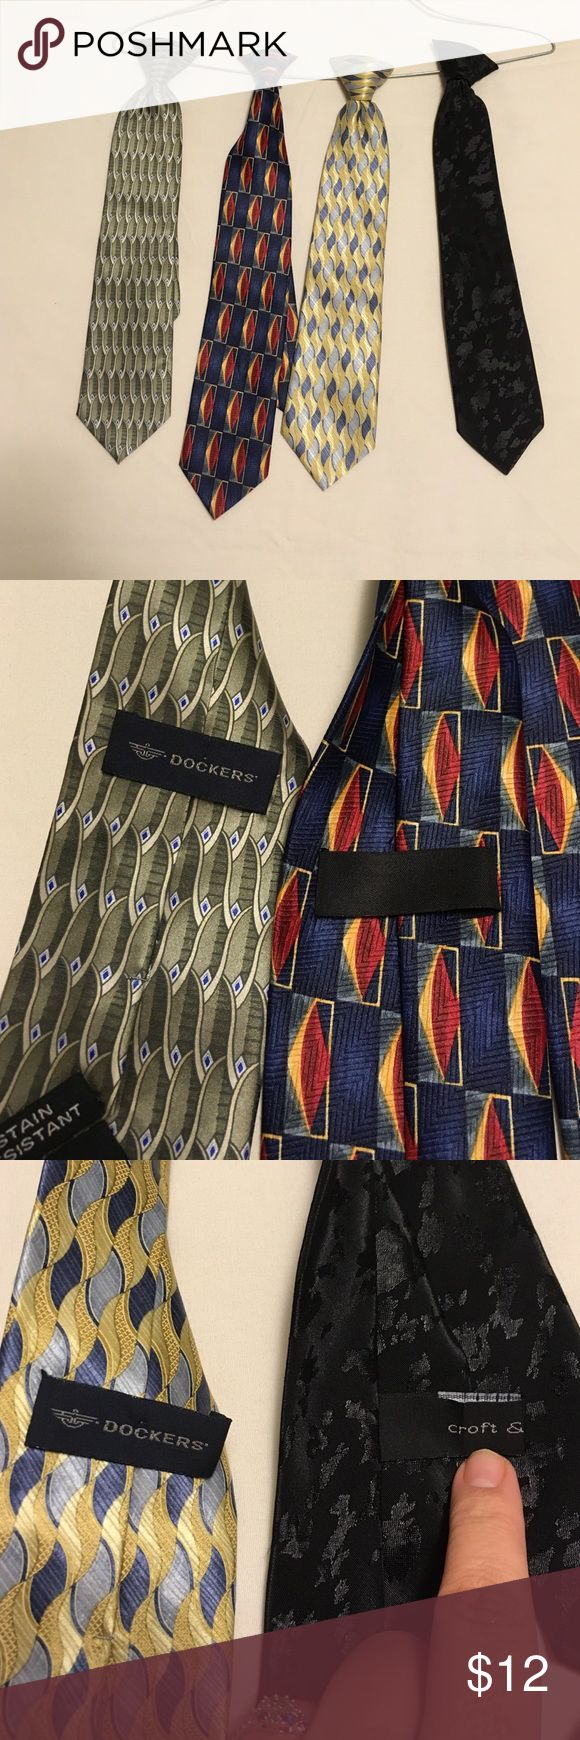 4 boy's clip on ties 4 boy's clip on ties. 3 are Dockers and 1 is croft and barrow Accessories Ties